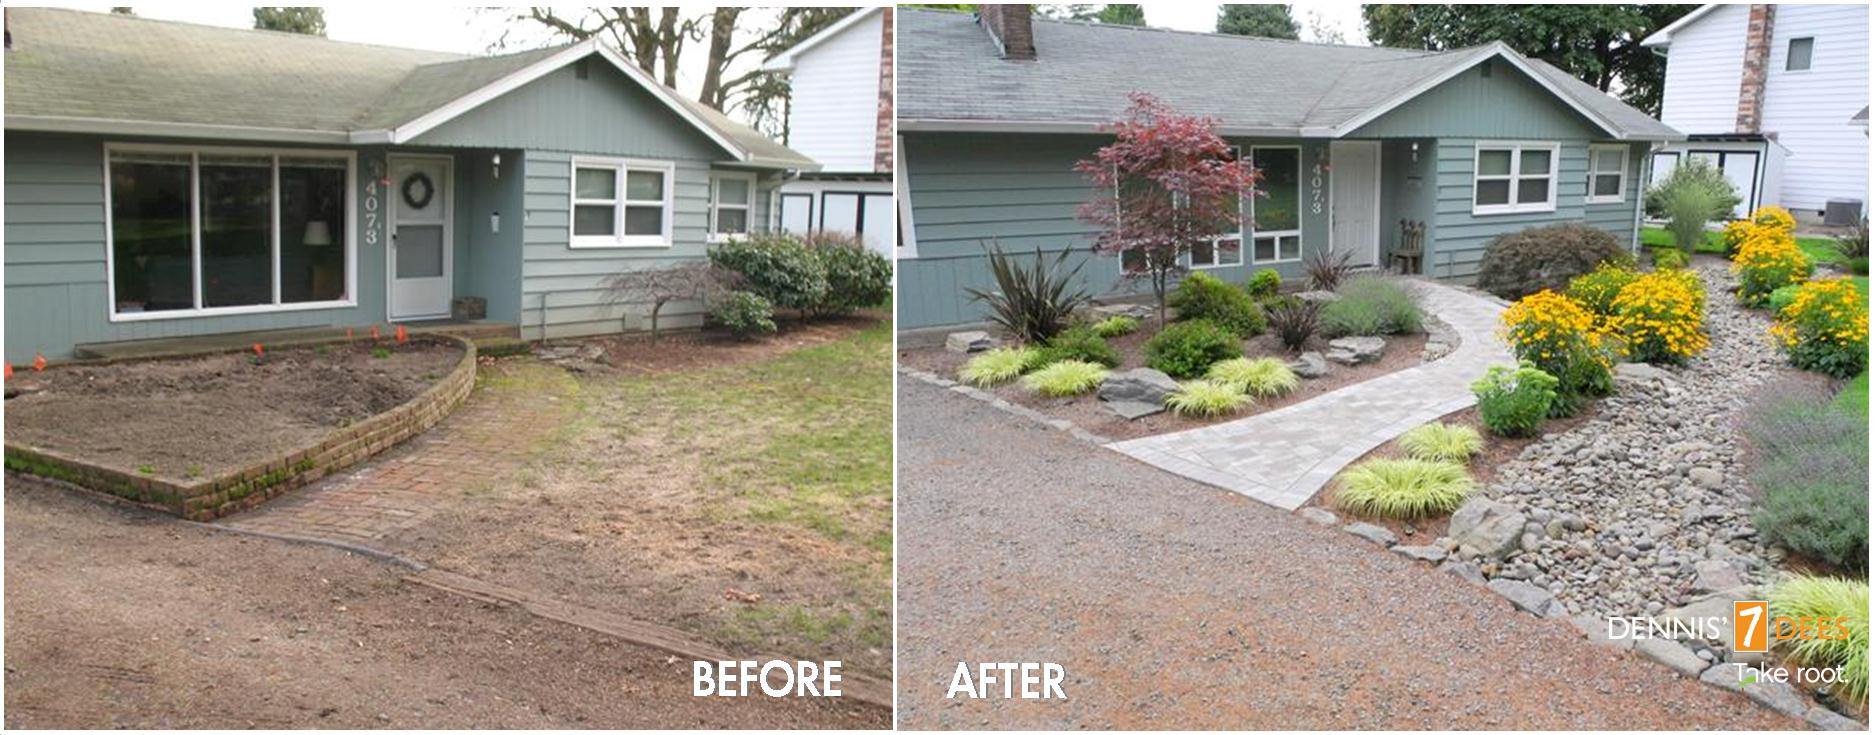 Small Front Yard Landscaping Before And After : Dennis dees